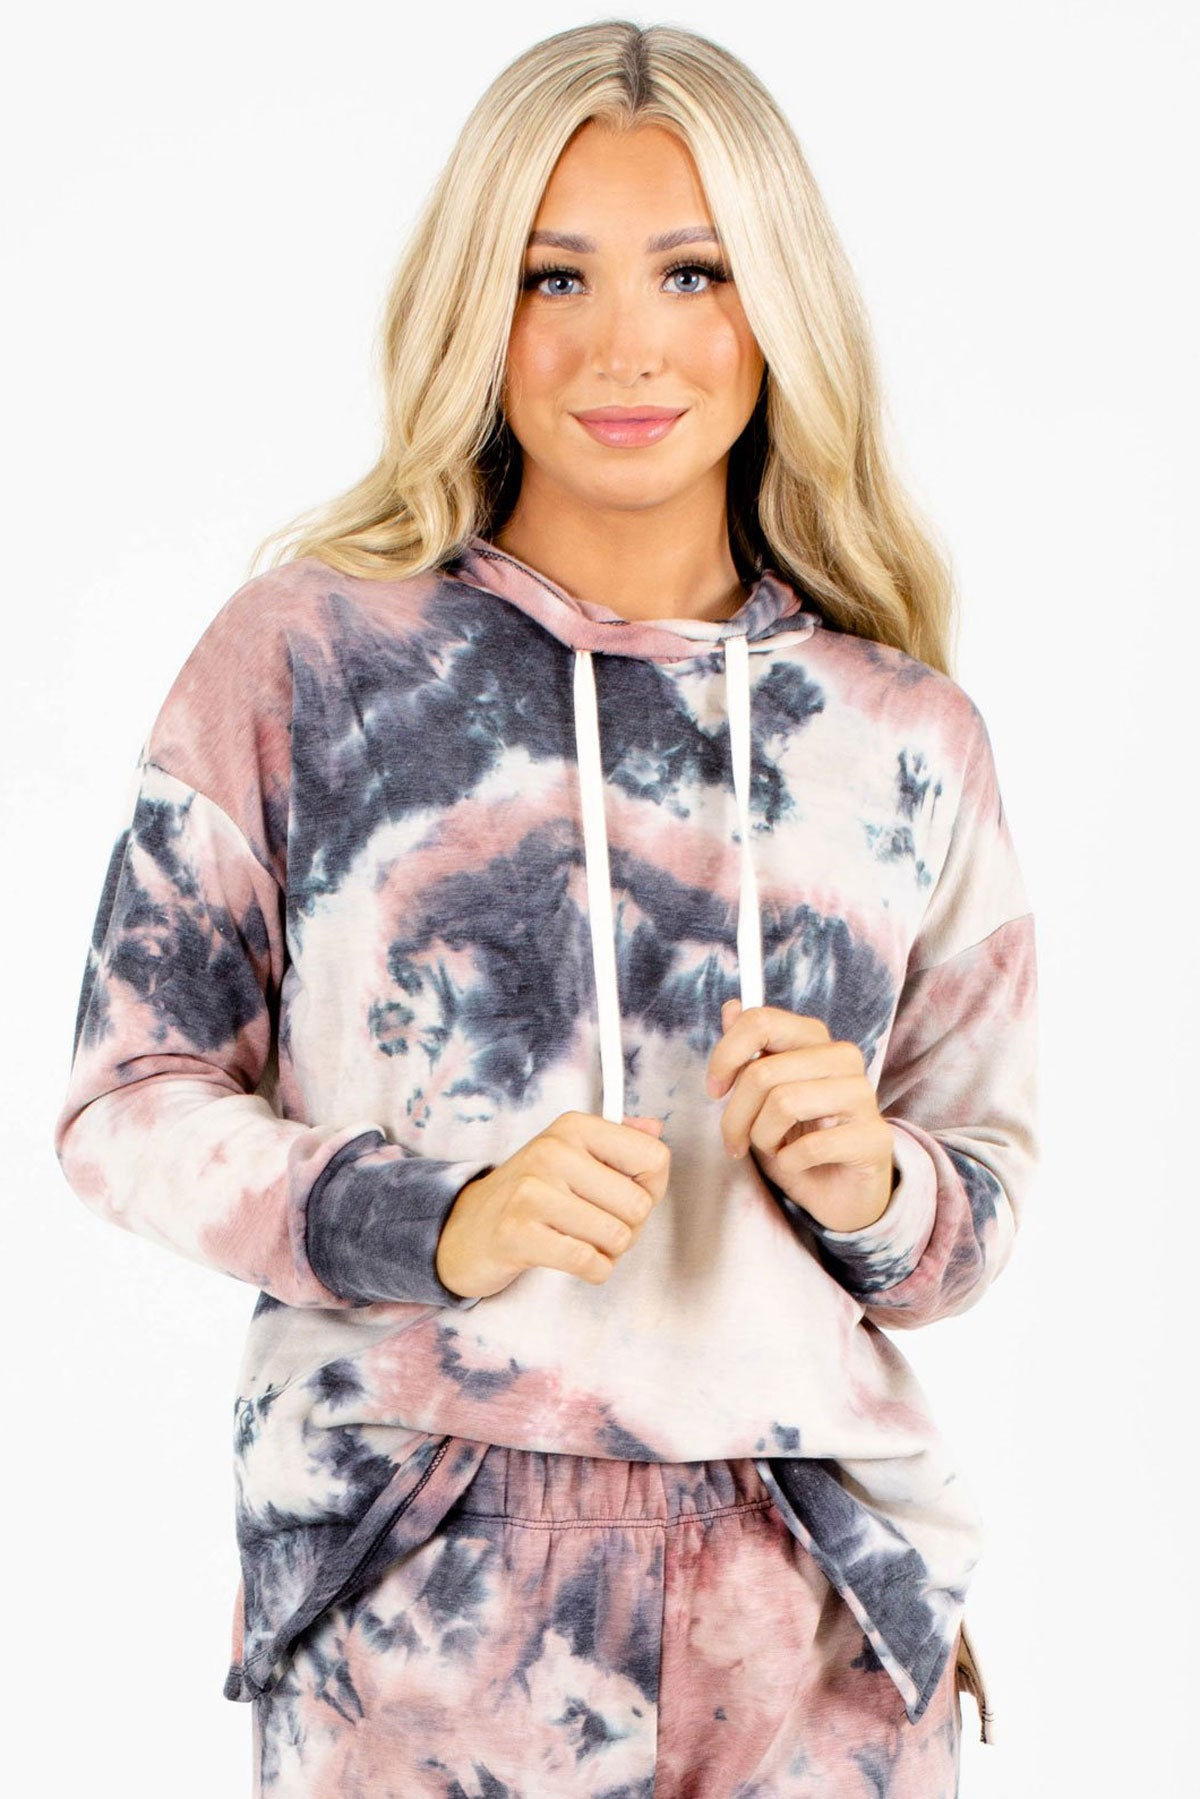 Pink and Blue Tie-Dye Print Boutique Hoodies for Women